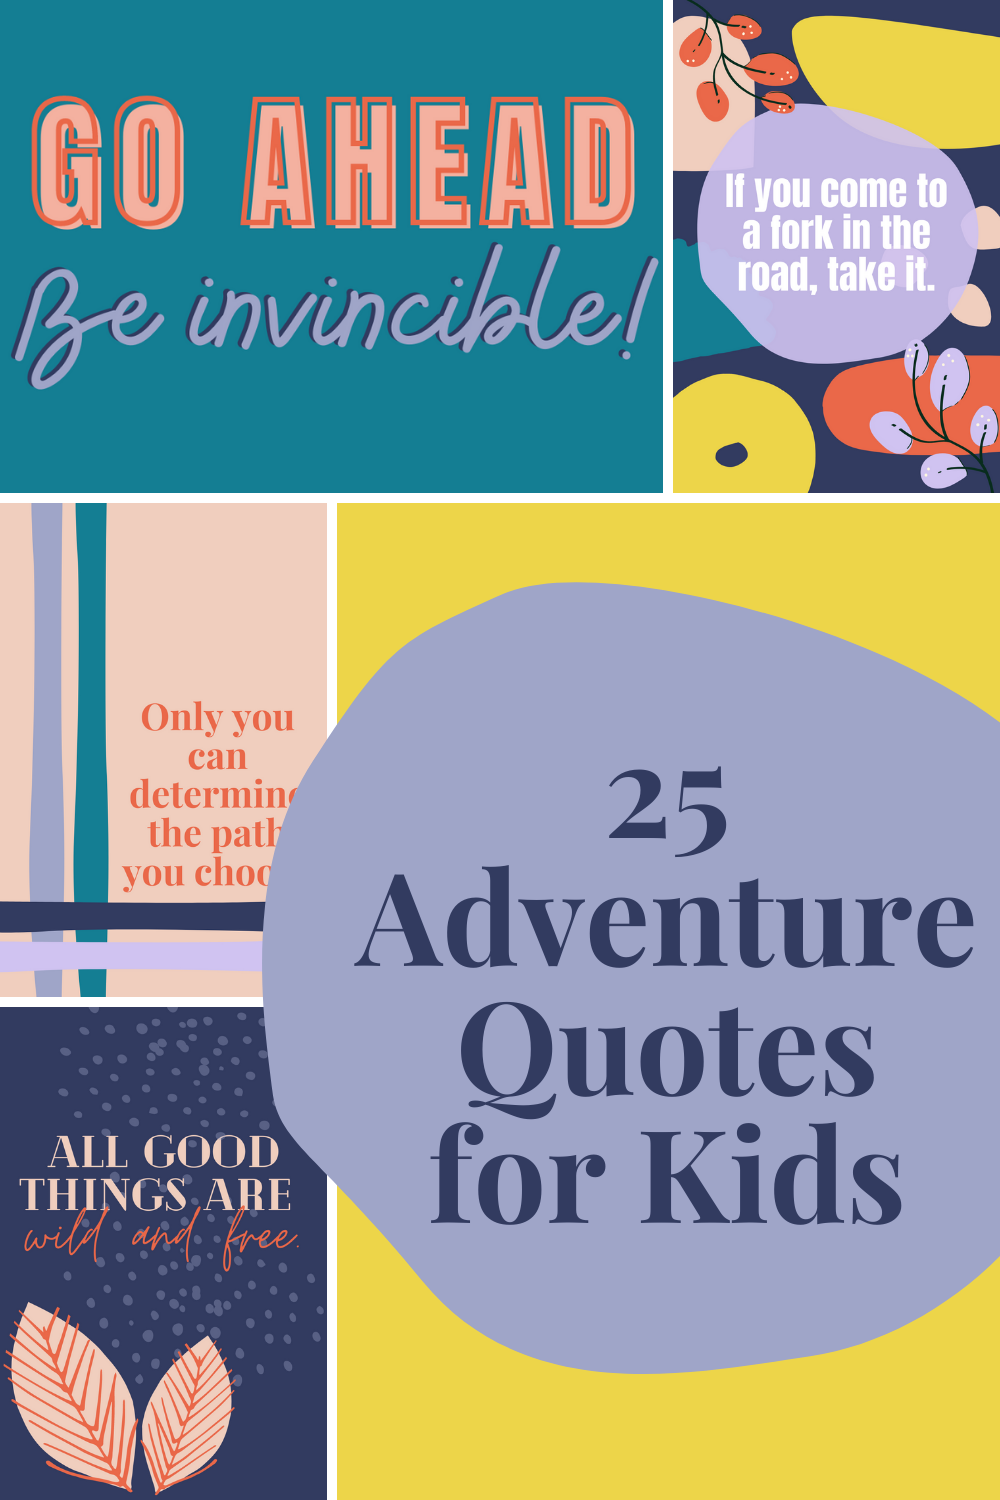 Adventure Quotes for Kids